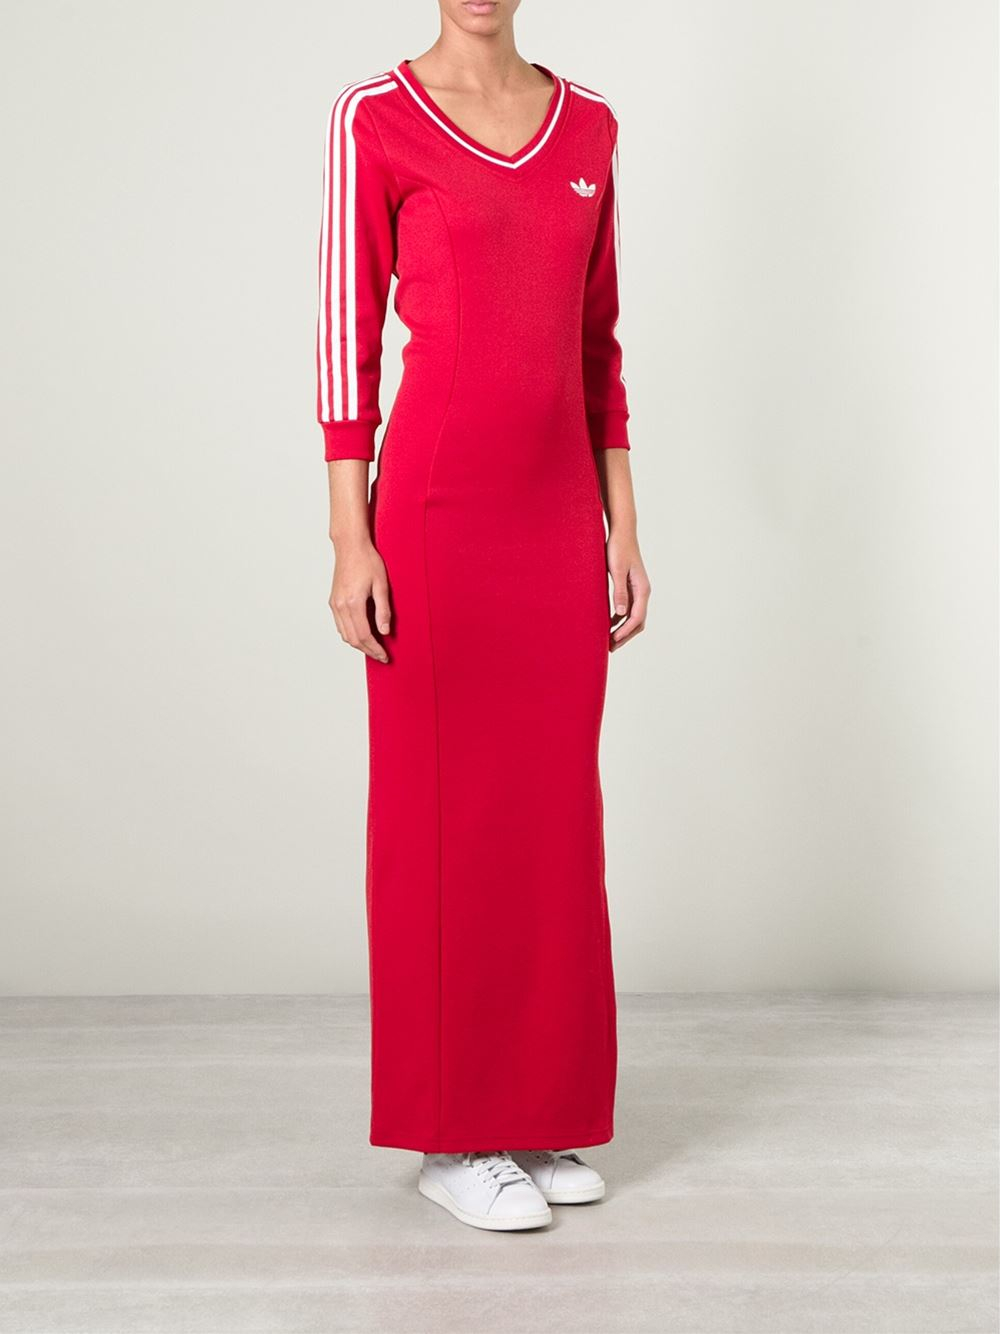 78d122e596 adidas Long Line Jersey Dress in Red - Lyst